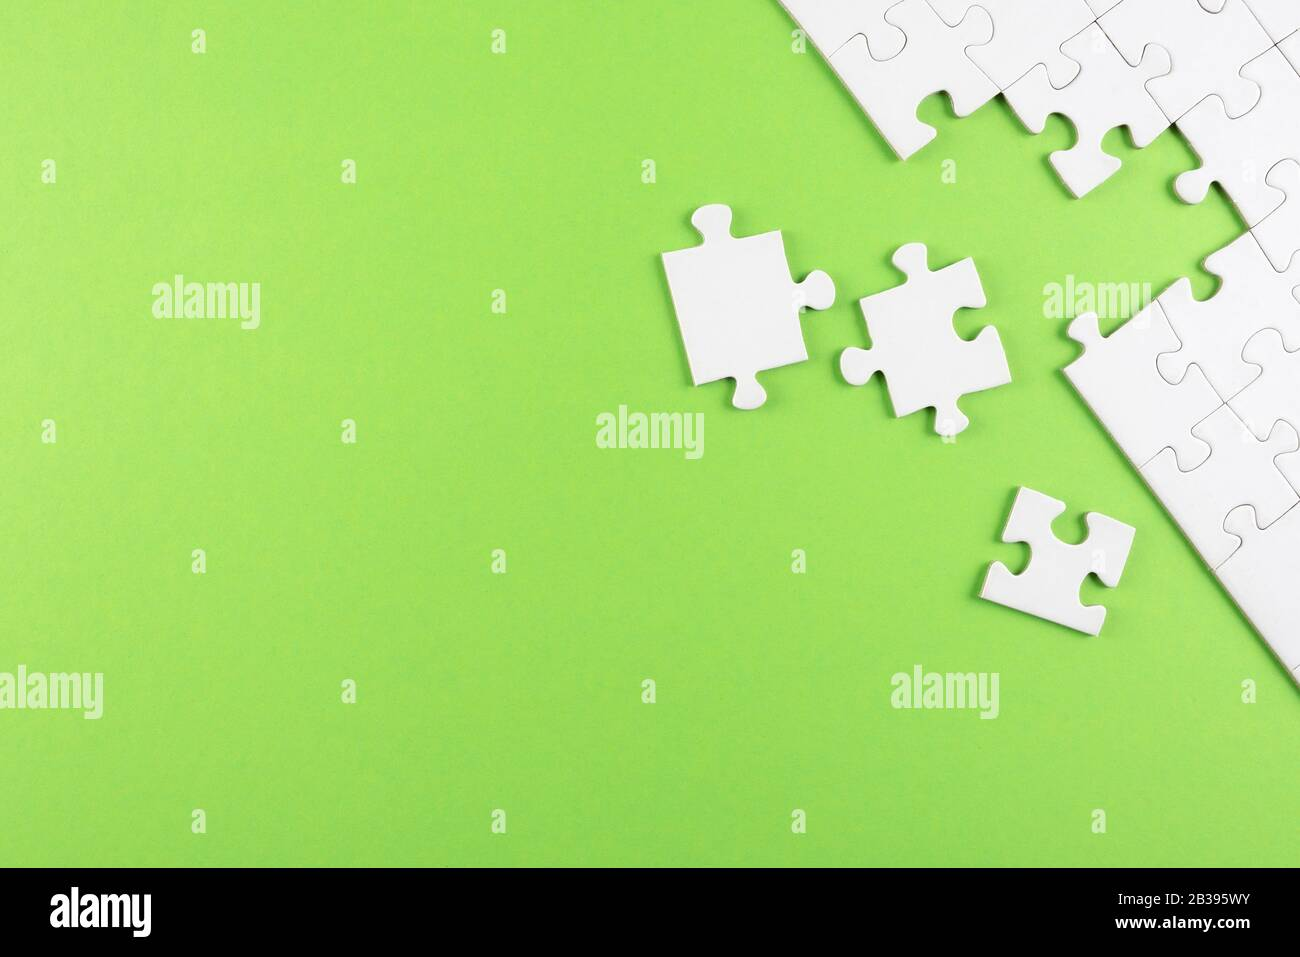 top view of white blank unfinished jigsaw puzzle on green background, completing a task or solving a problem concept Stock Photo